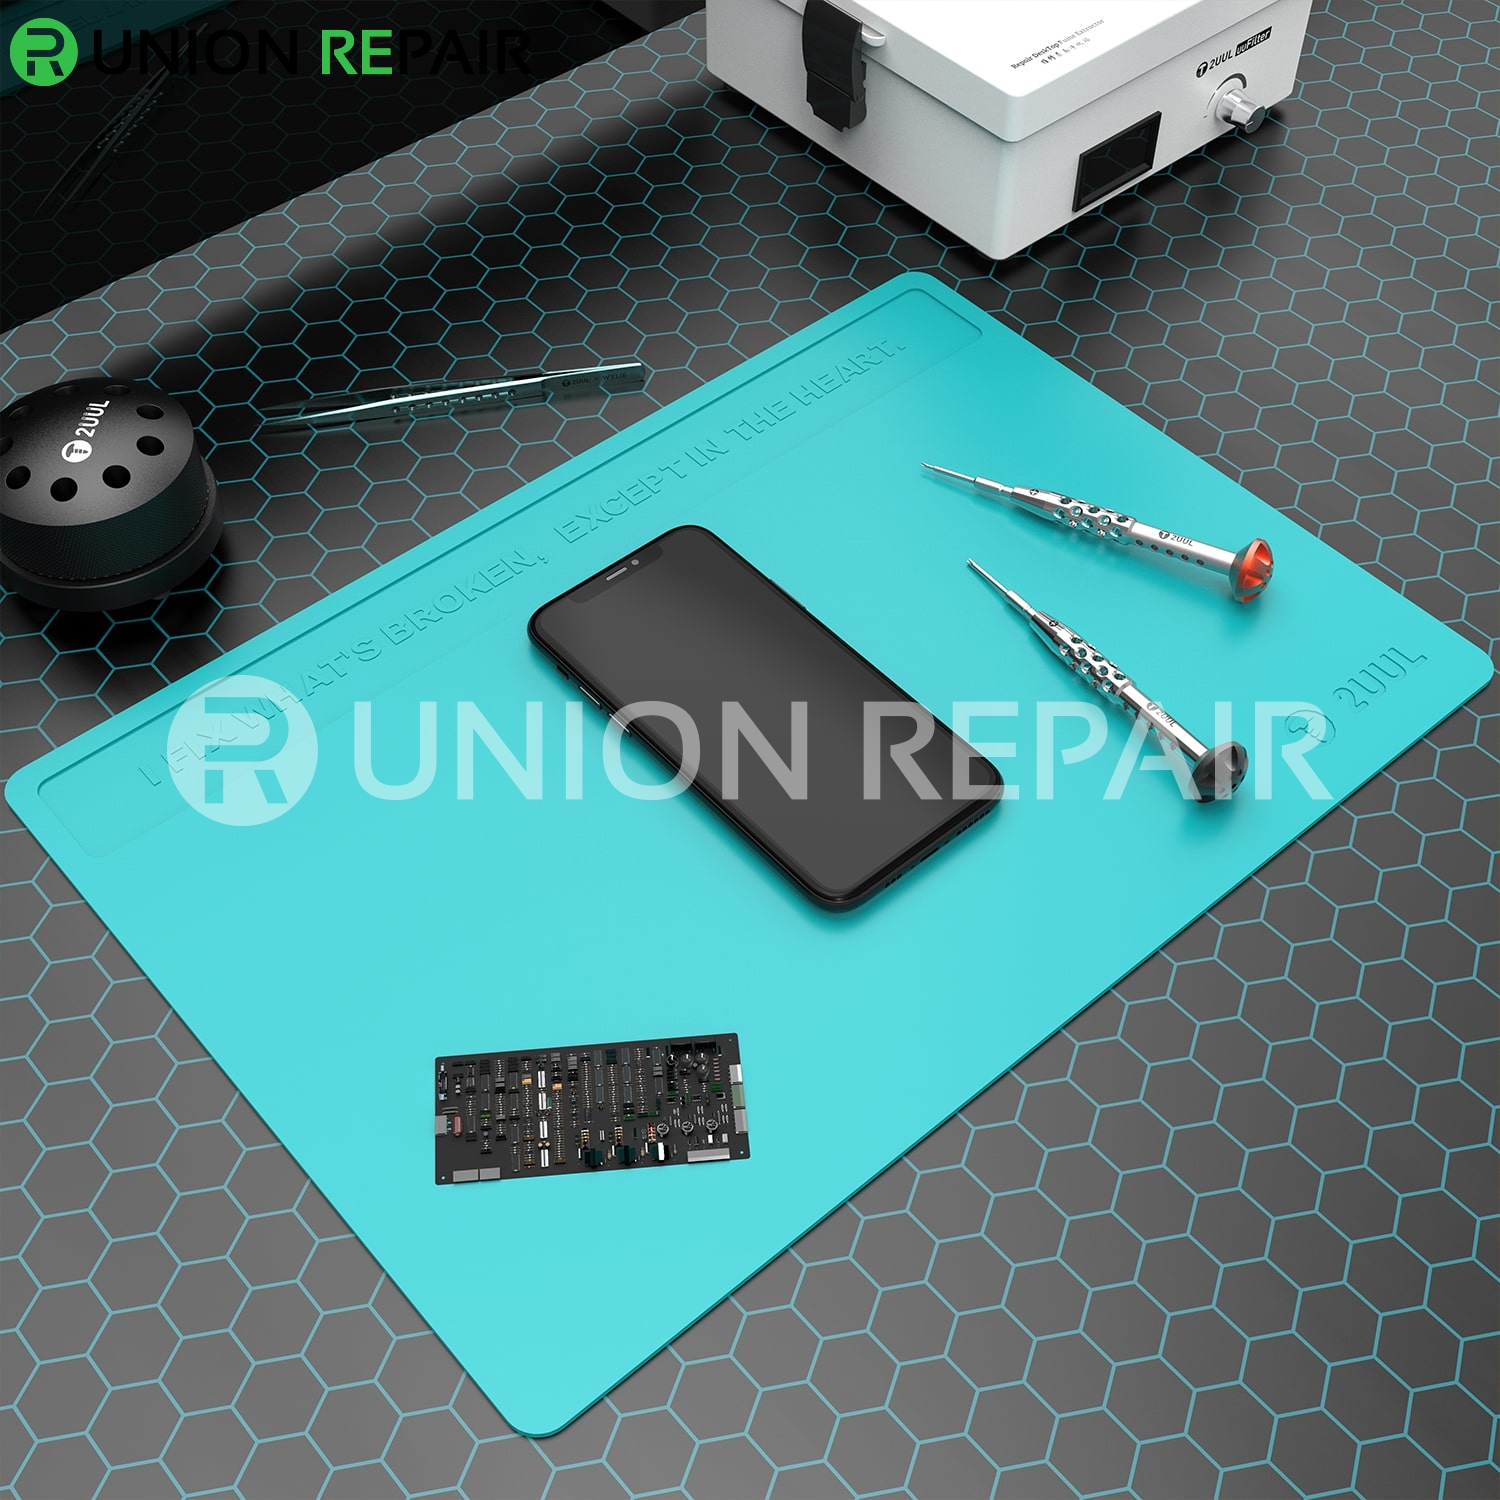 2UUL Heat Resisting Silicone Pad with Anti Dust Coating 400mm*280mm